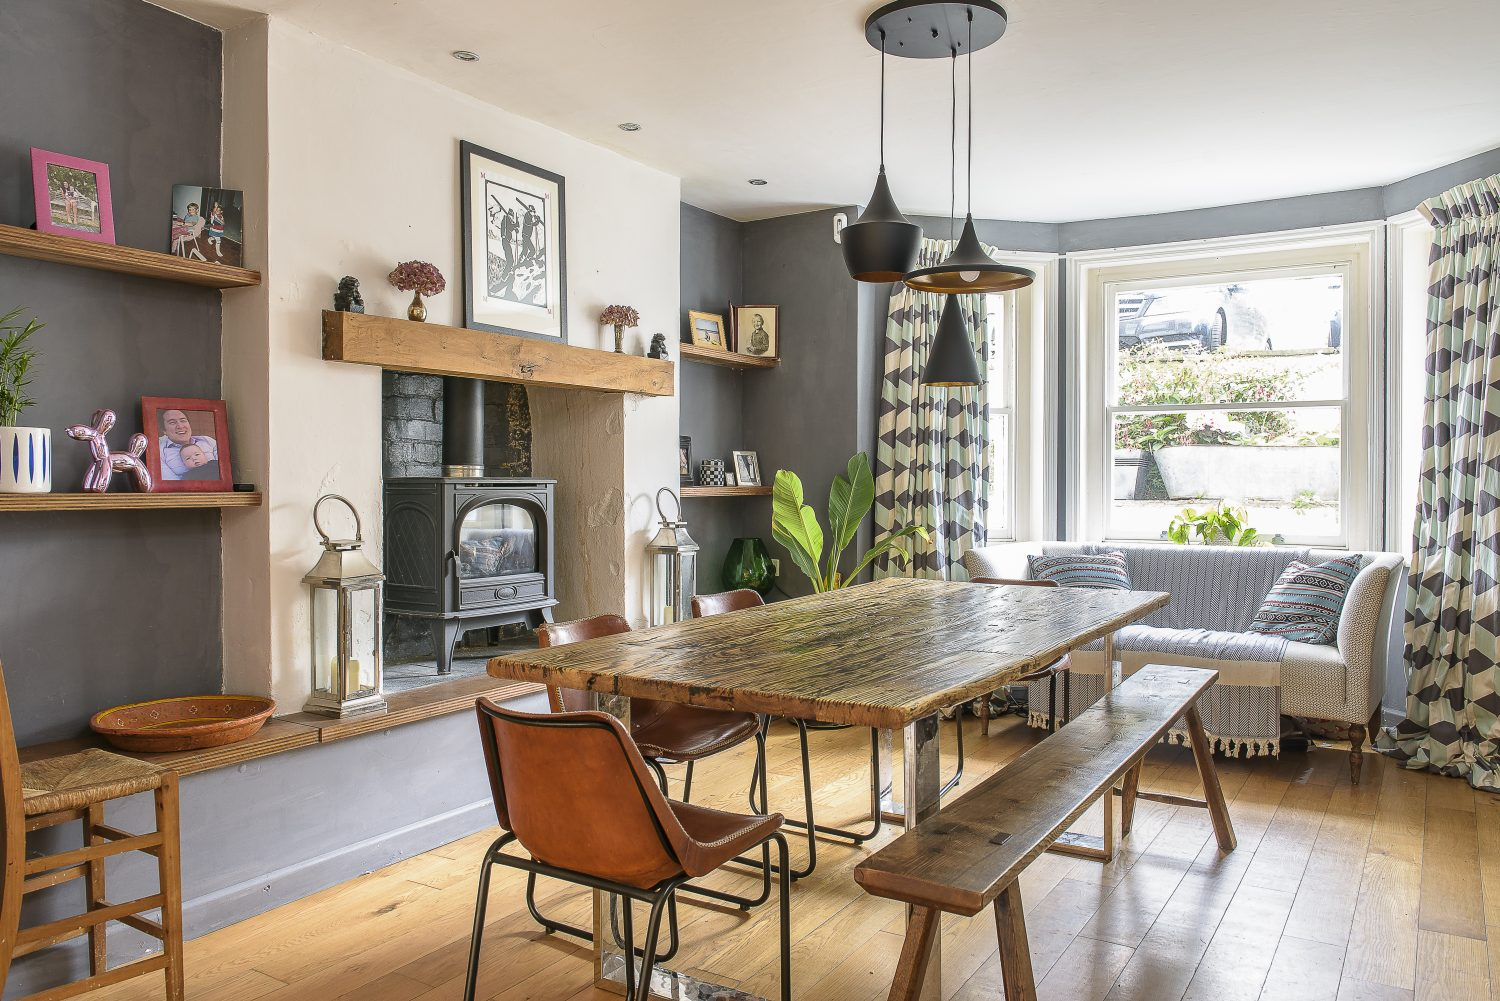 """When the couple moved in, the kitchen and dining room had already been opened out into a large family-friendly social space. A cosy touch is provided by the woodburner, nestled in an elevated position in the fireplace. The dining table was upcycled with the help of WildeWod Creations – a local small business that """"does wonders with wood,"""" says Jules. The walls are painted a deep grey, a colour picked out in the graphic pattern of the curtain fabric by Korla, also stocked at Haines Collection"""